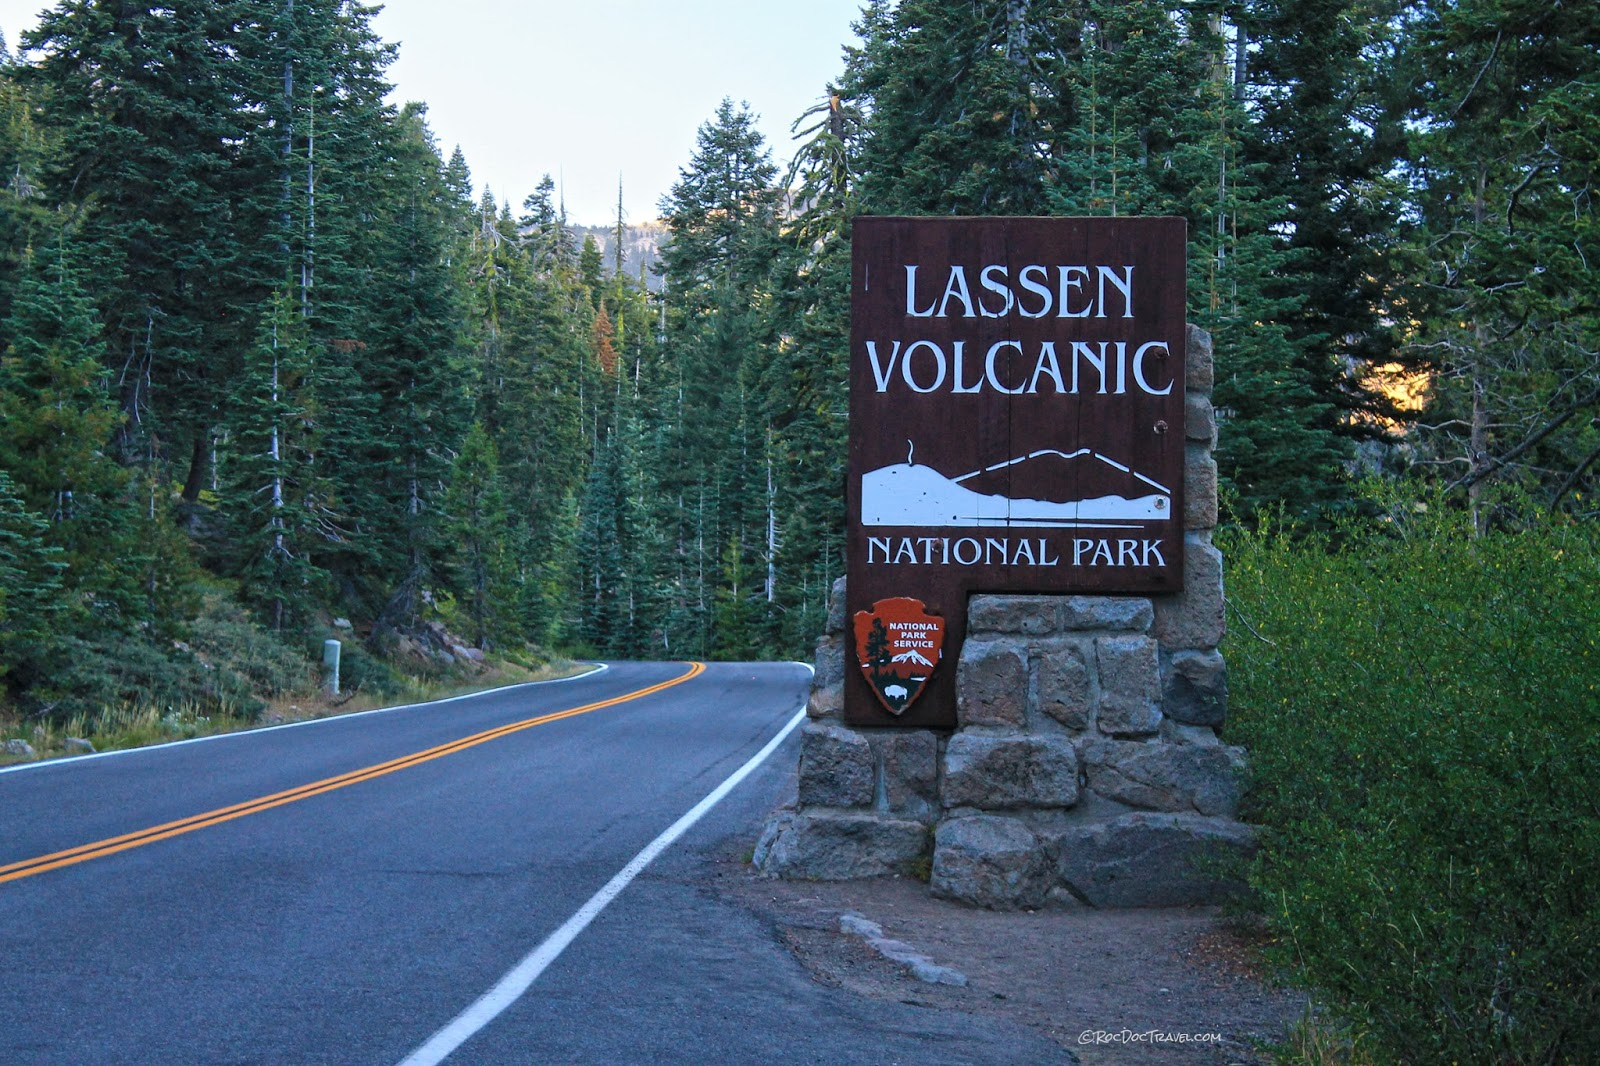 Lassen Volcanic National Park Cascades volcano California eruption disaster lava hiking geology travel field trip photography copyright RocDocTravel.com